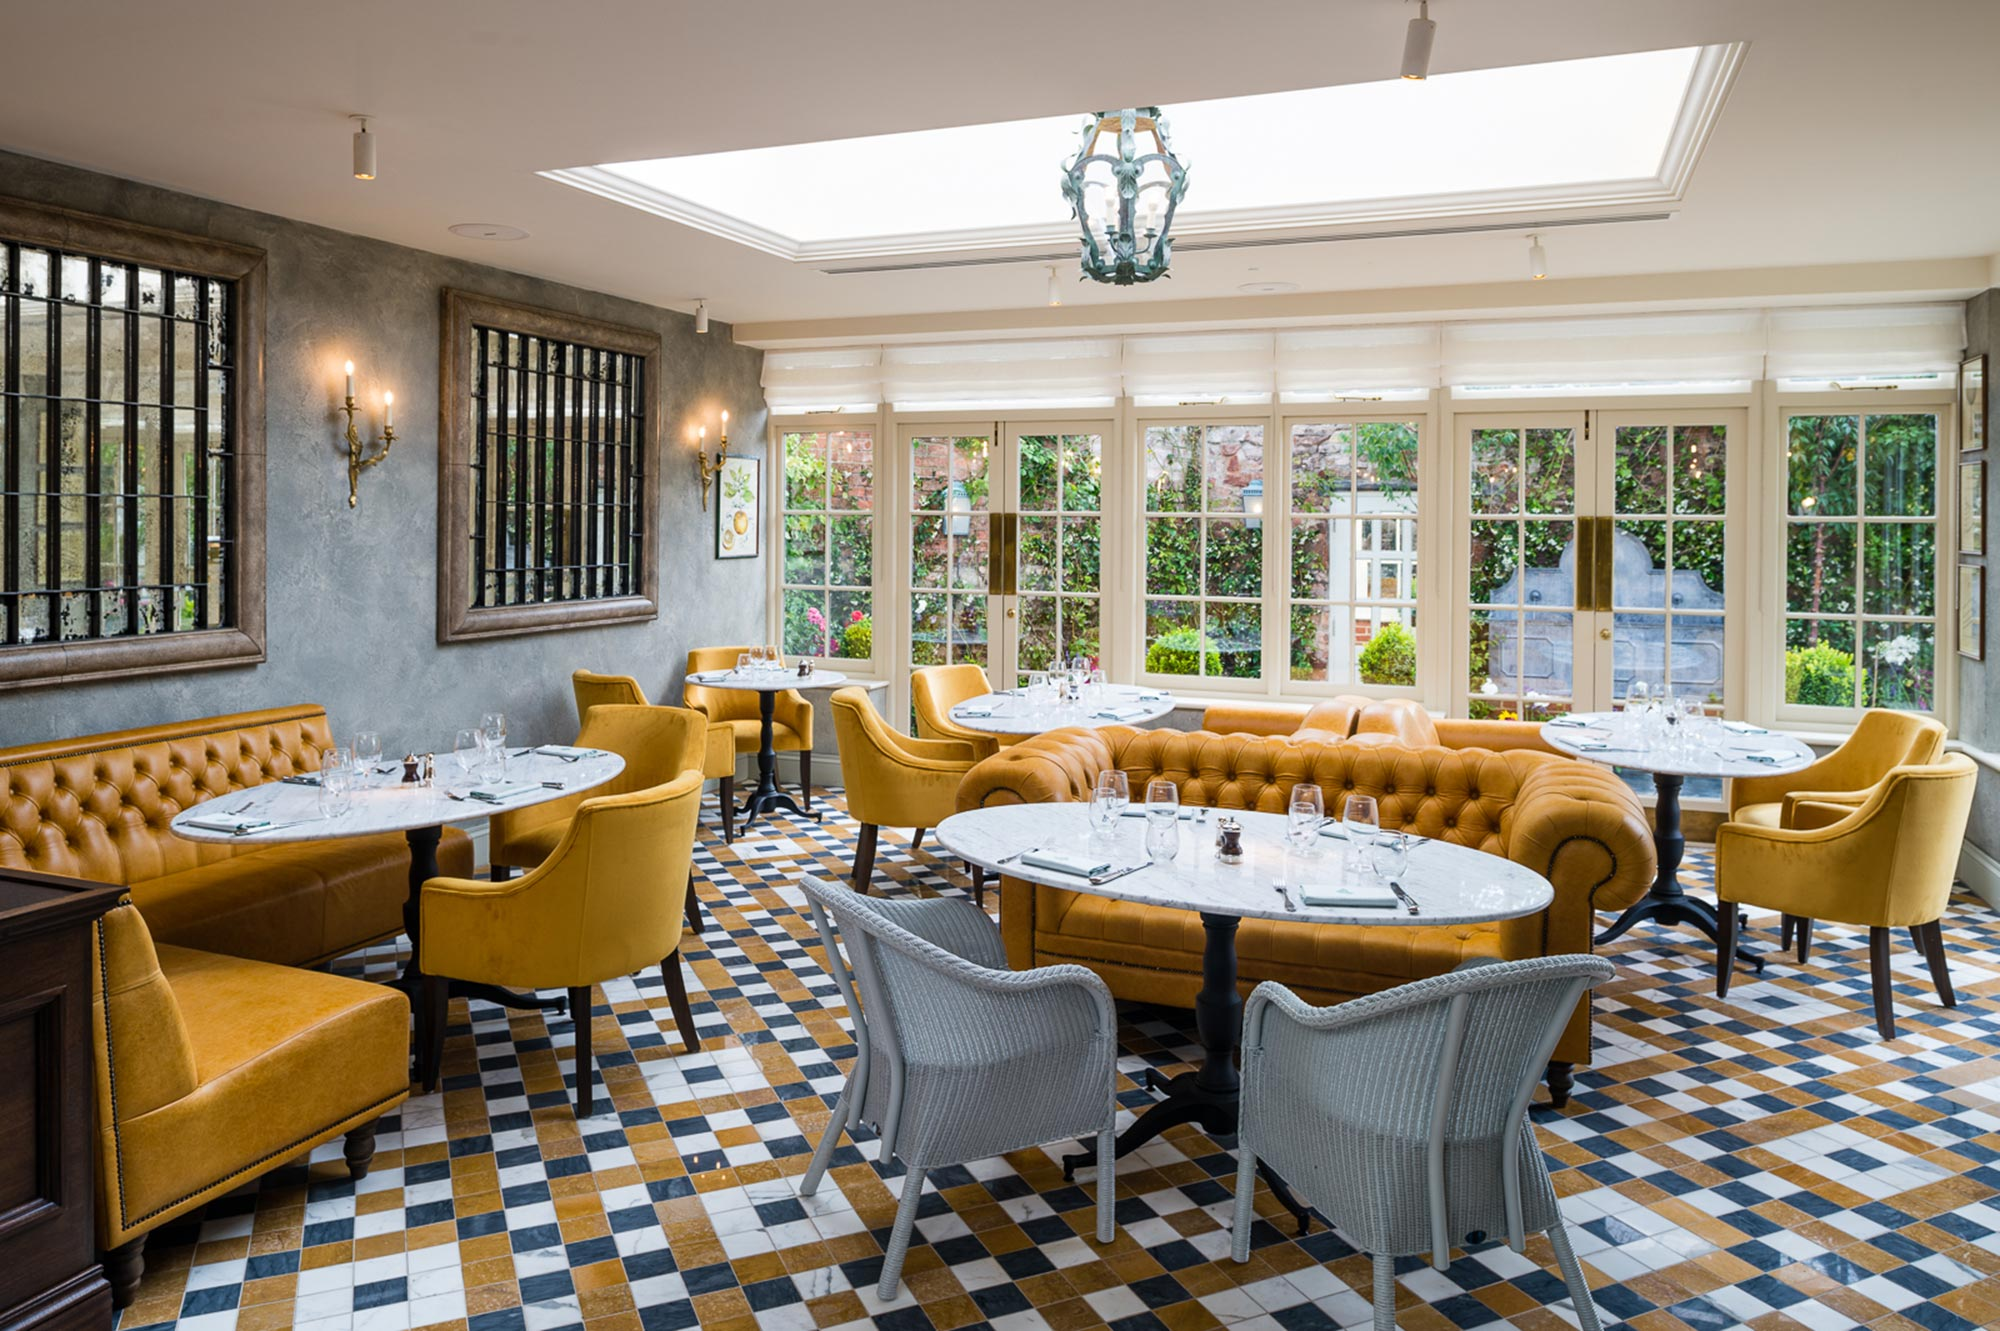 Brunch in Bristol - The Ivy Clifton Brasserie, Bristol - The Ivy Clifton Brasserie